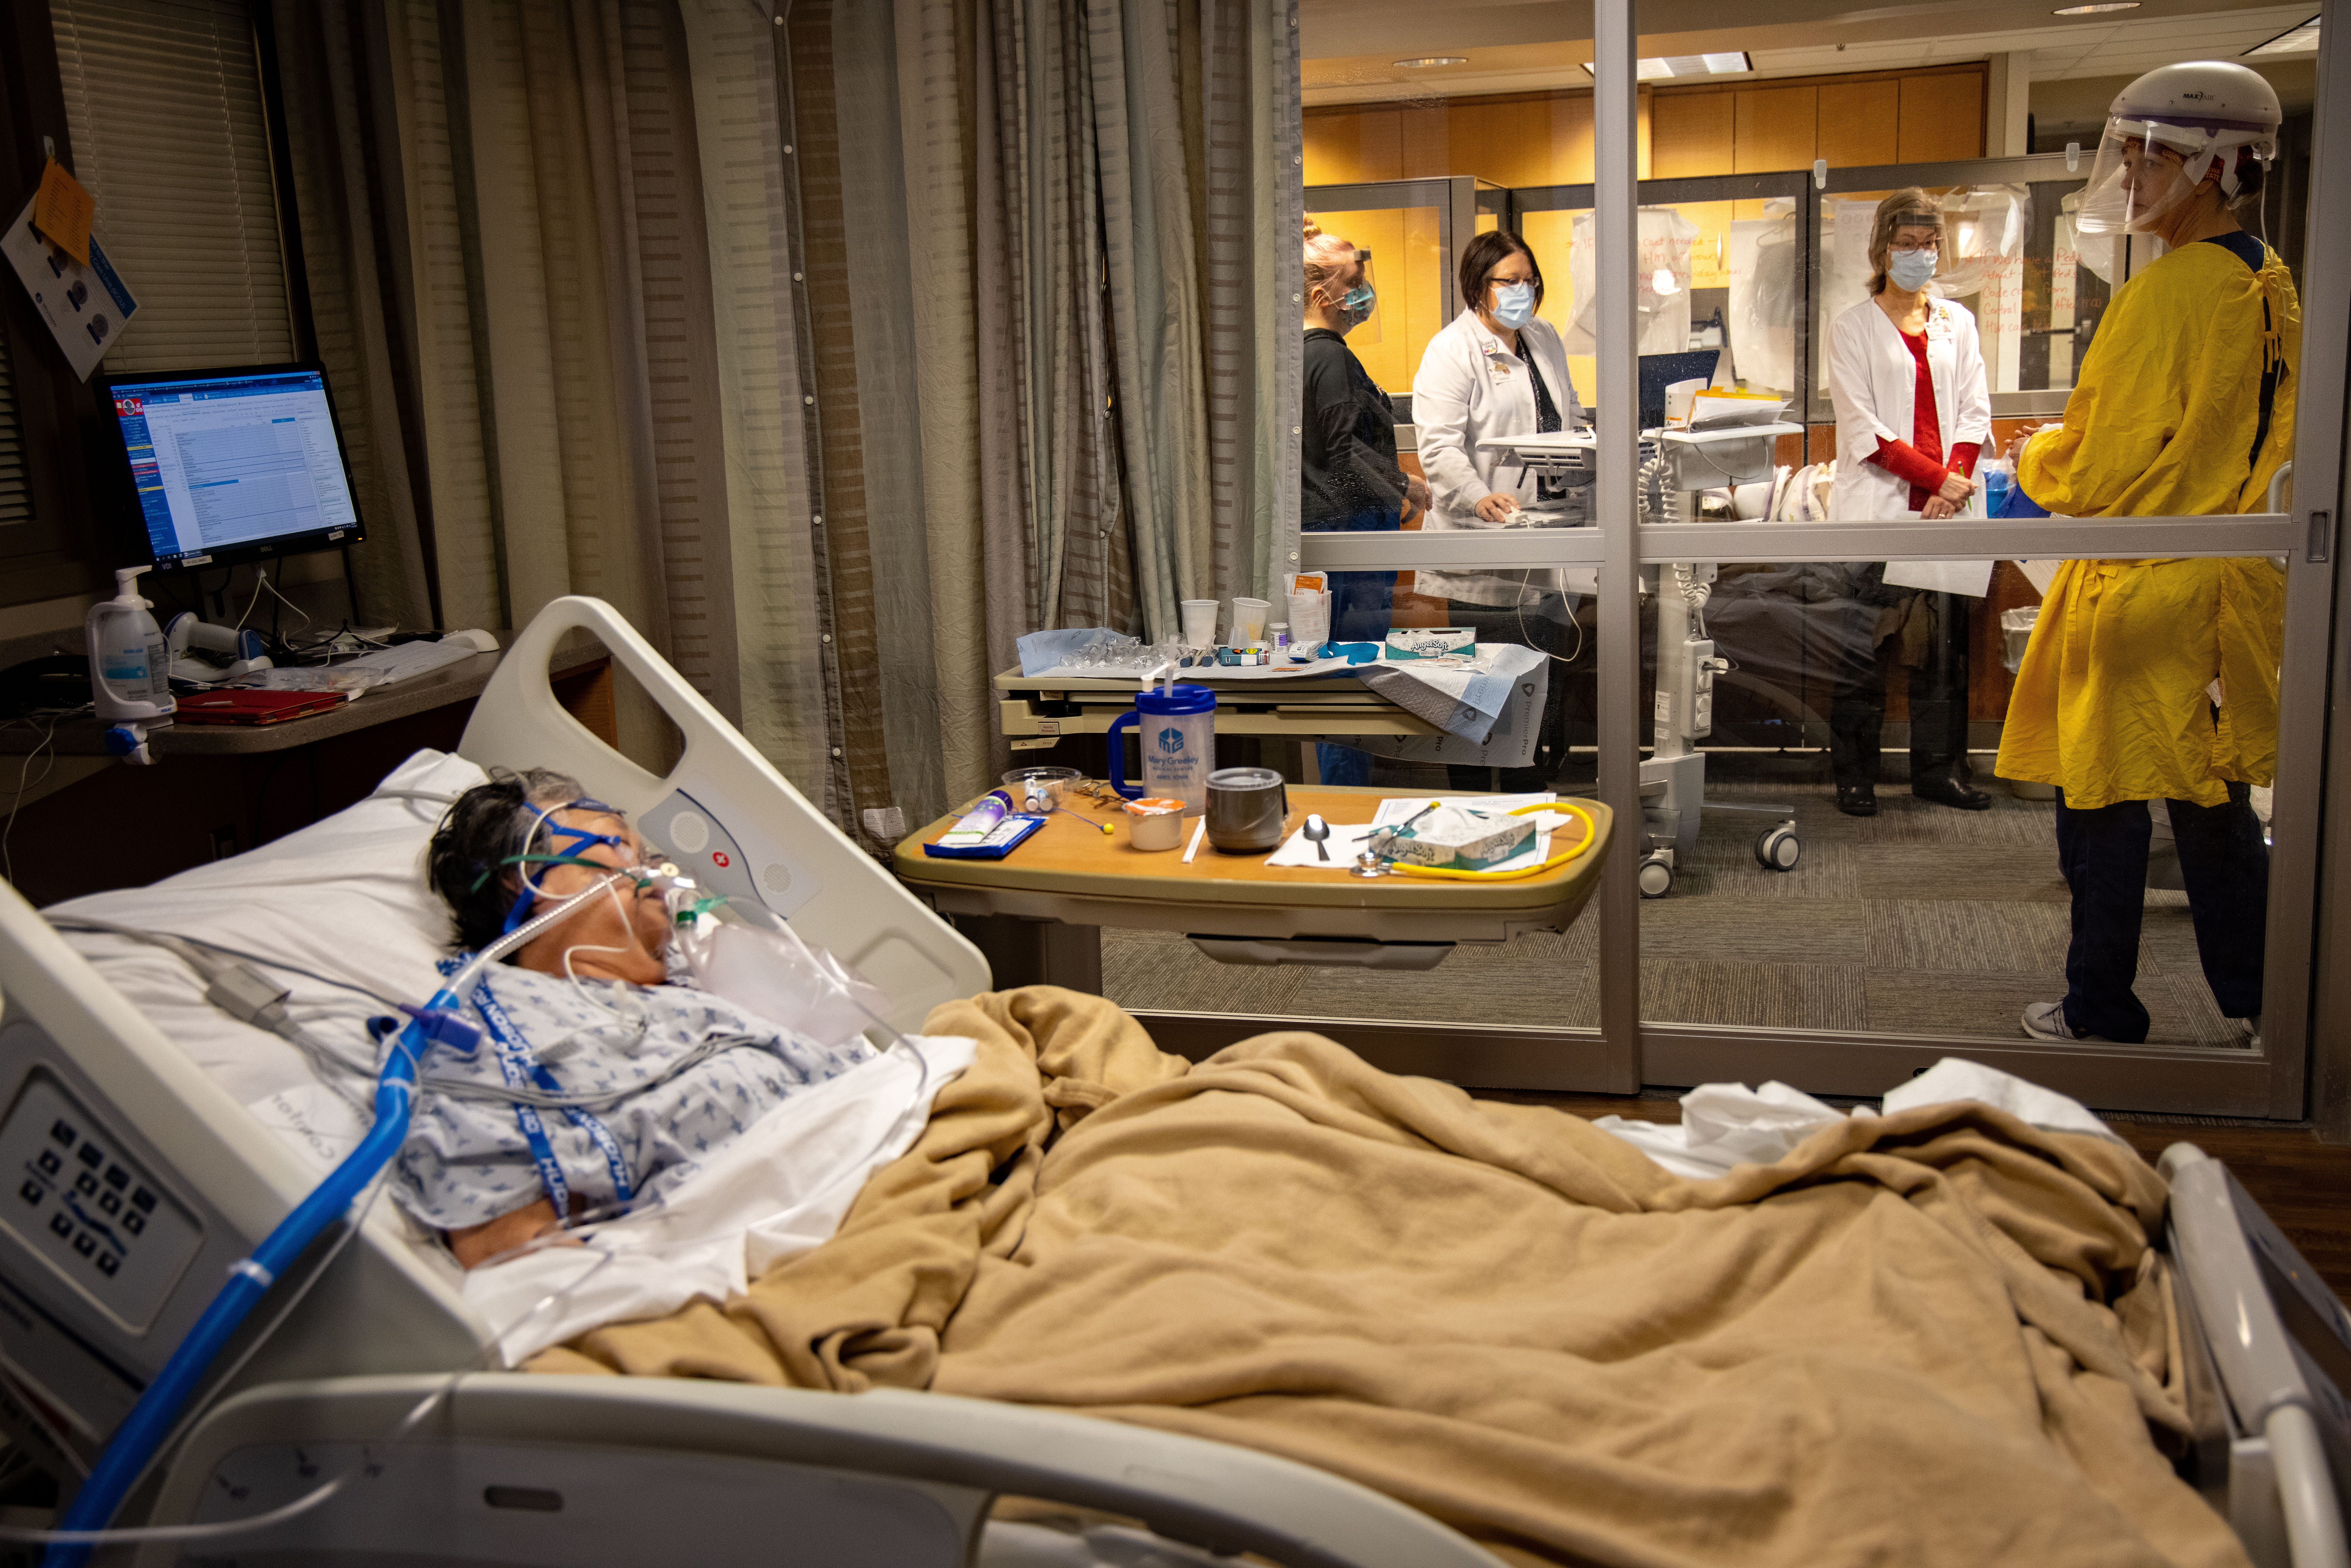 ICU staff discuss care options for COVID-19 patient Thong Sengphirom during morning rounds at Mary Greeley Medical Center in Ames, Friday, Dec. 11, 2020.